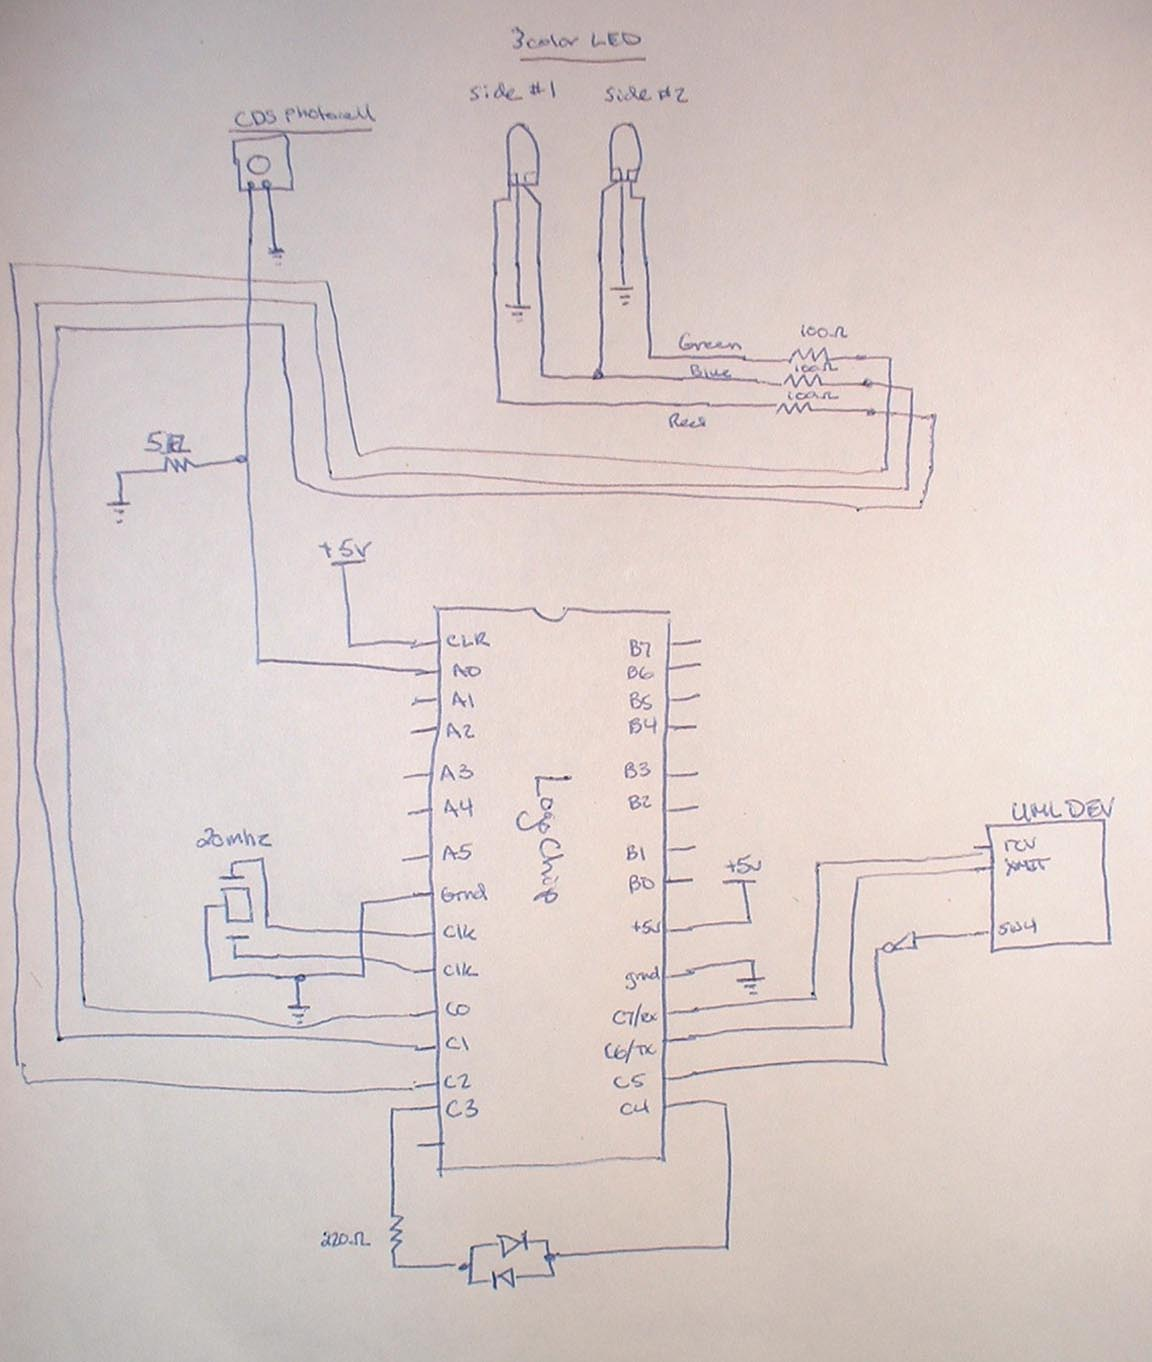 Botfest 2003 Project Writeup Photocell Sensor Wiring Diagram Color Schematic Full Screen